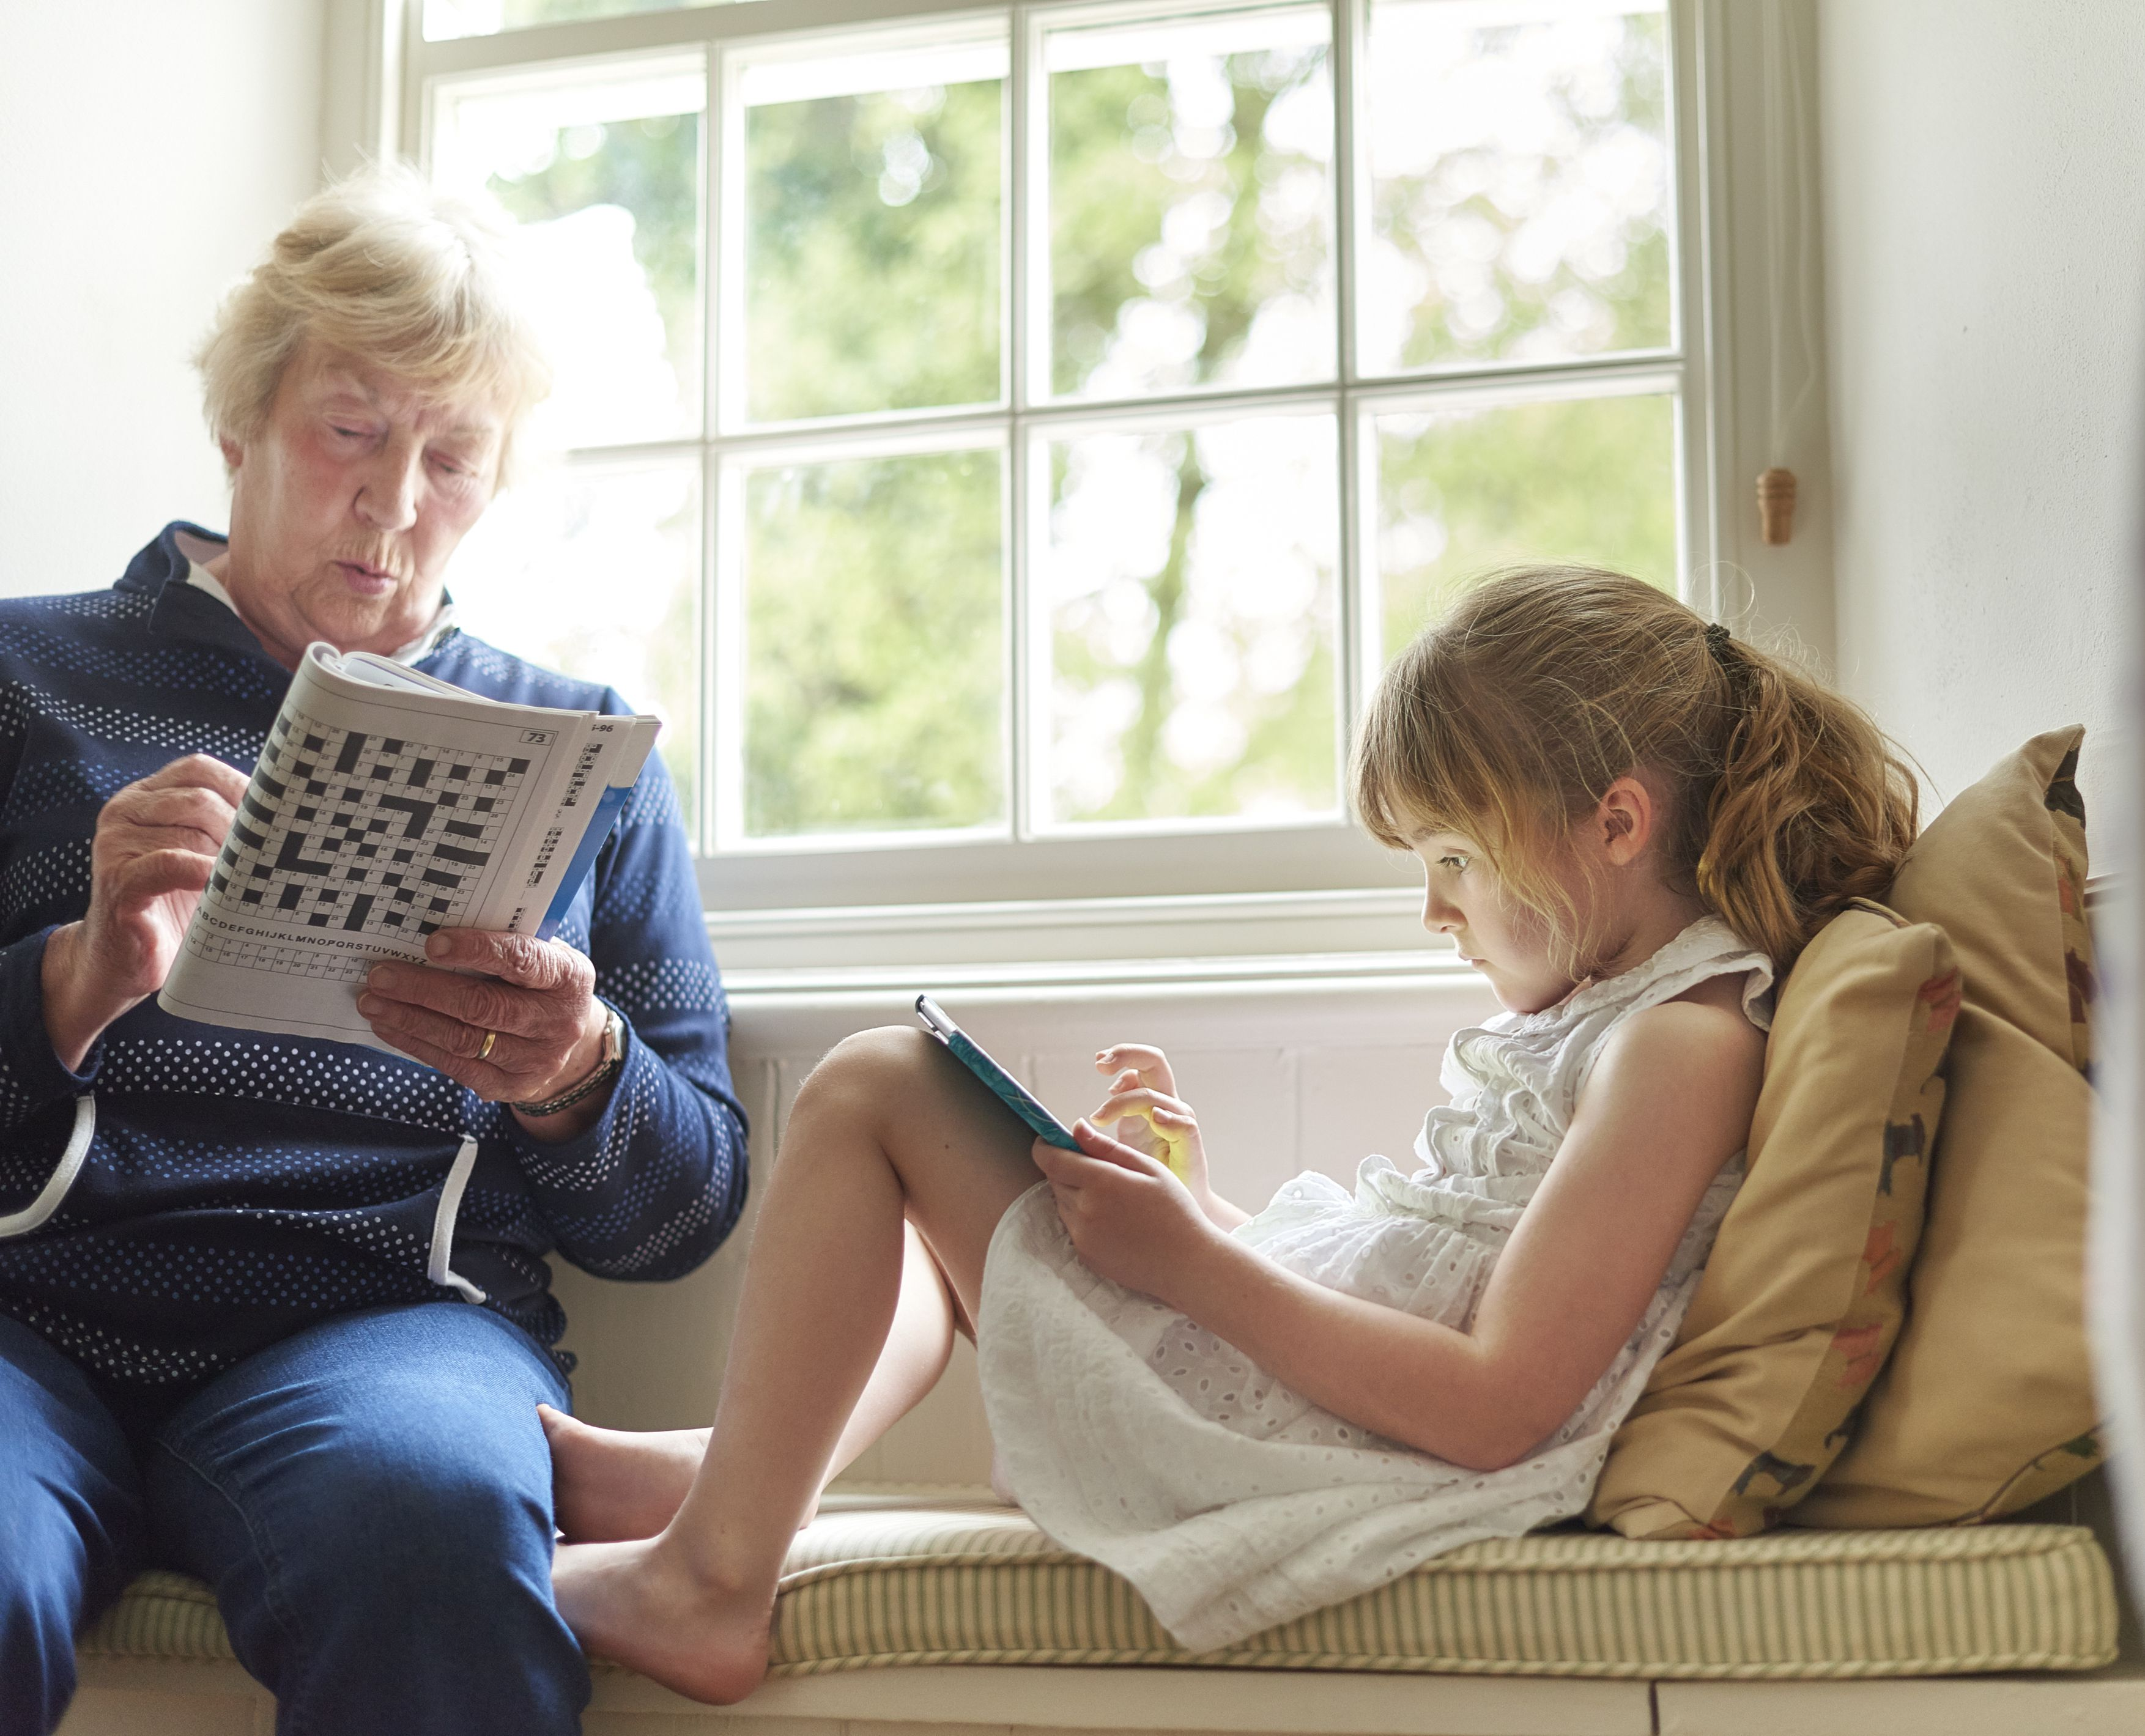 Crossword puzzles prove knowledgeable and fun!